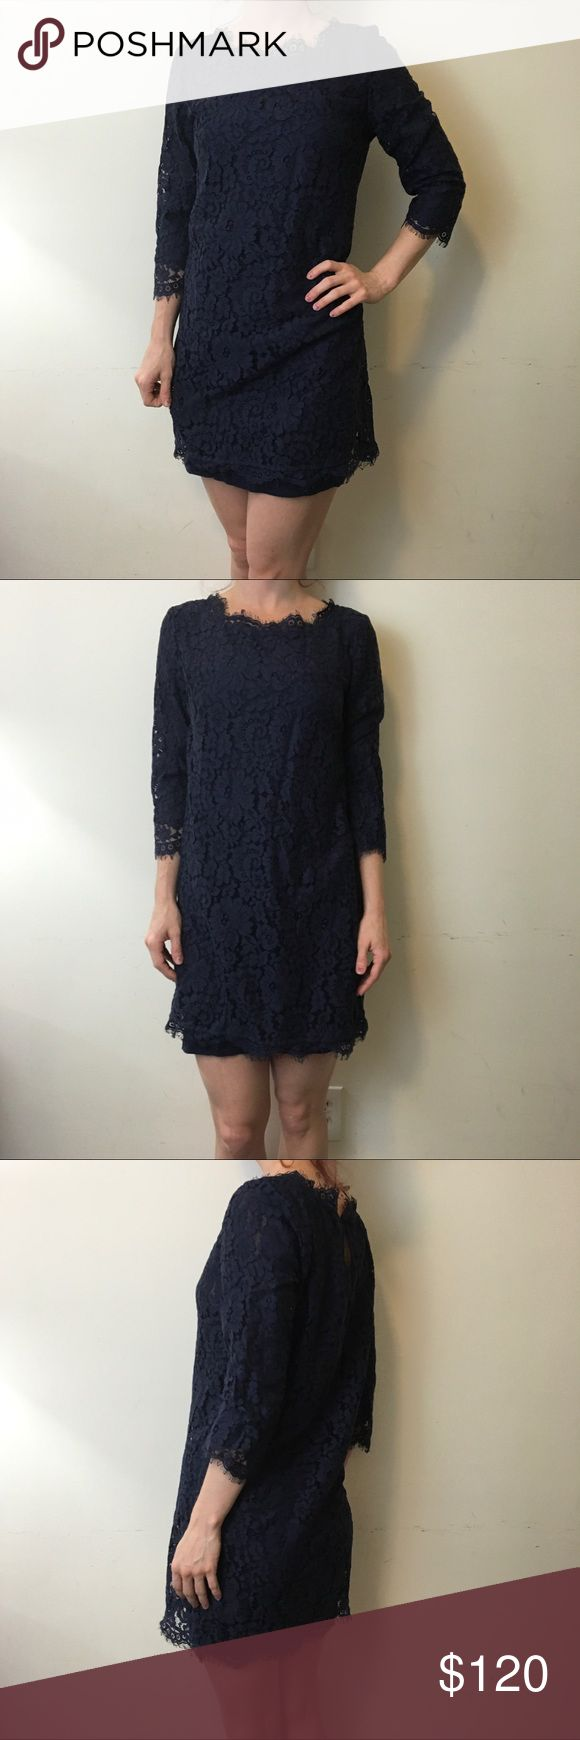 """Joie Navy Lace Scalloped Shift Dress Gorgeous JOIE dress in navy with lace all over and scalloped hems. Sleeves are mid length and is lined along with an optional navy slip inside. Above knee length and is a size small. In new condition not worn. Shoulder to hem is 31"""" Joie Dresses Mini"""